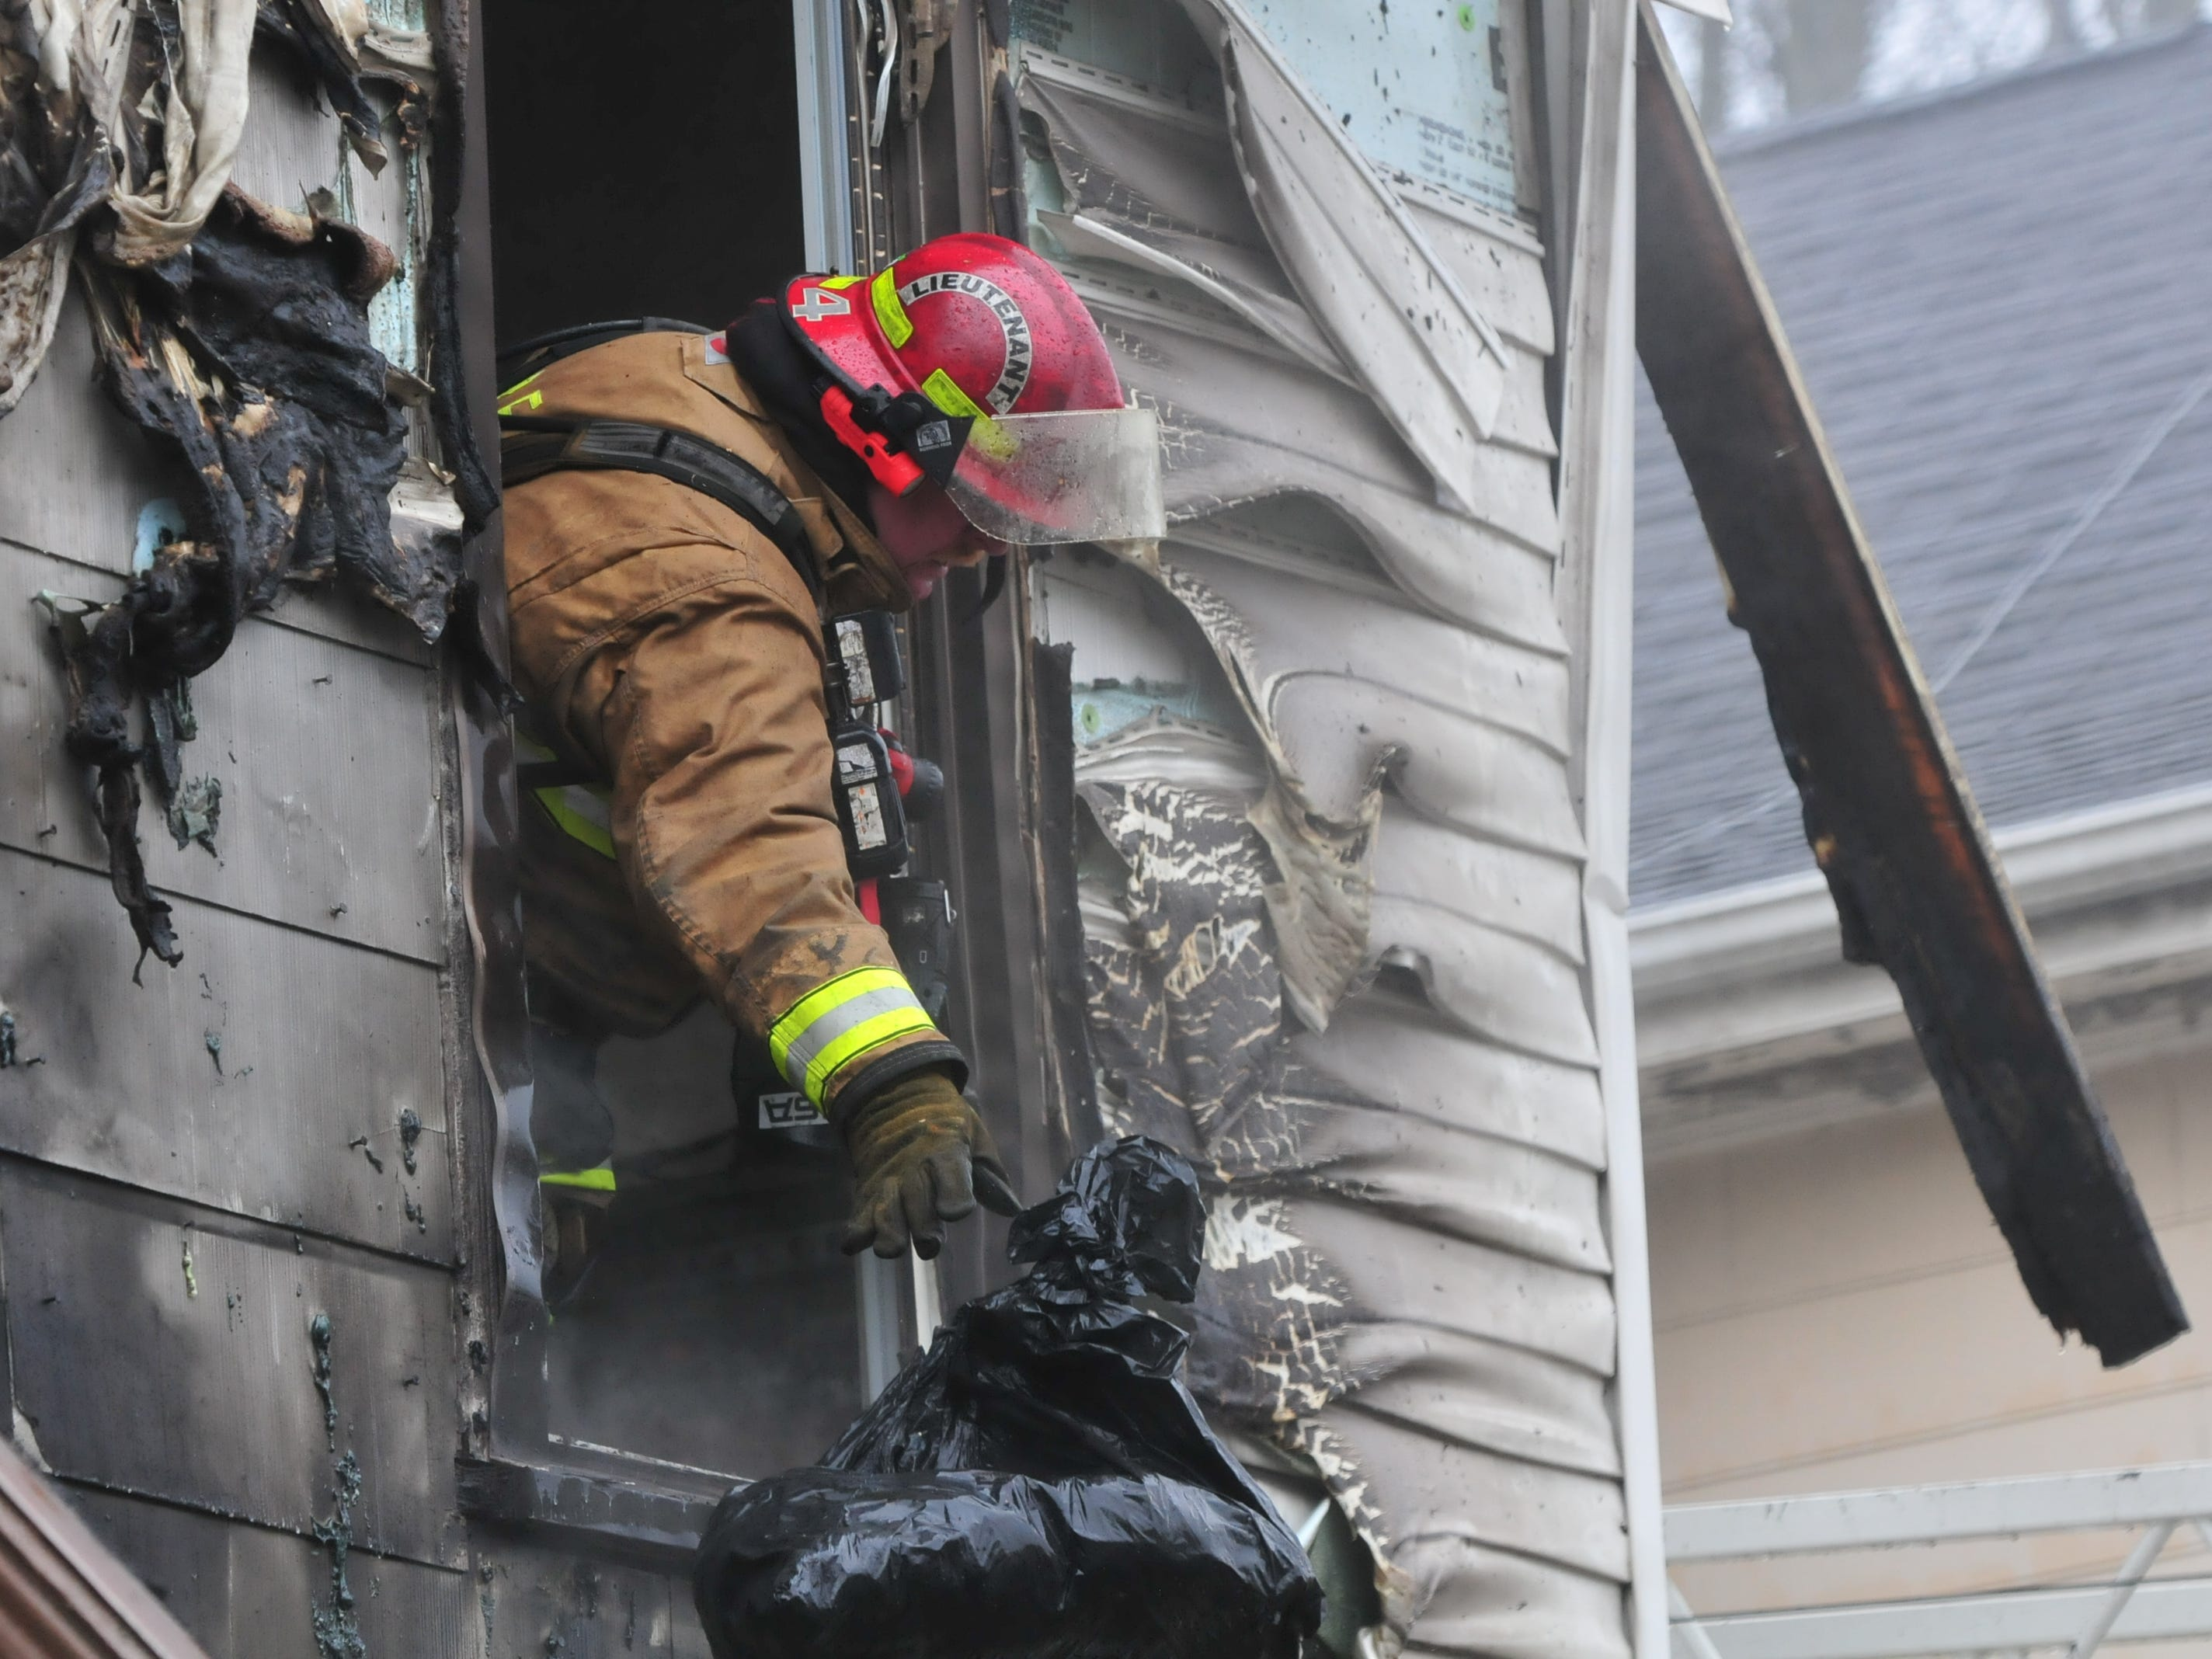 Richmond Fire Department personnel toss belongings out a window of 112 N. 18th St. during Wednesday's fire.